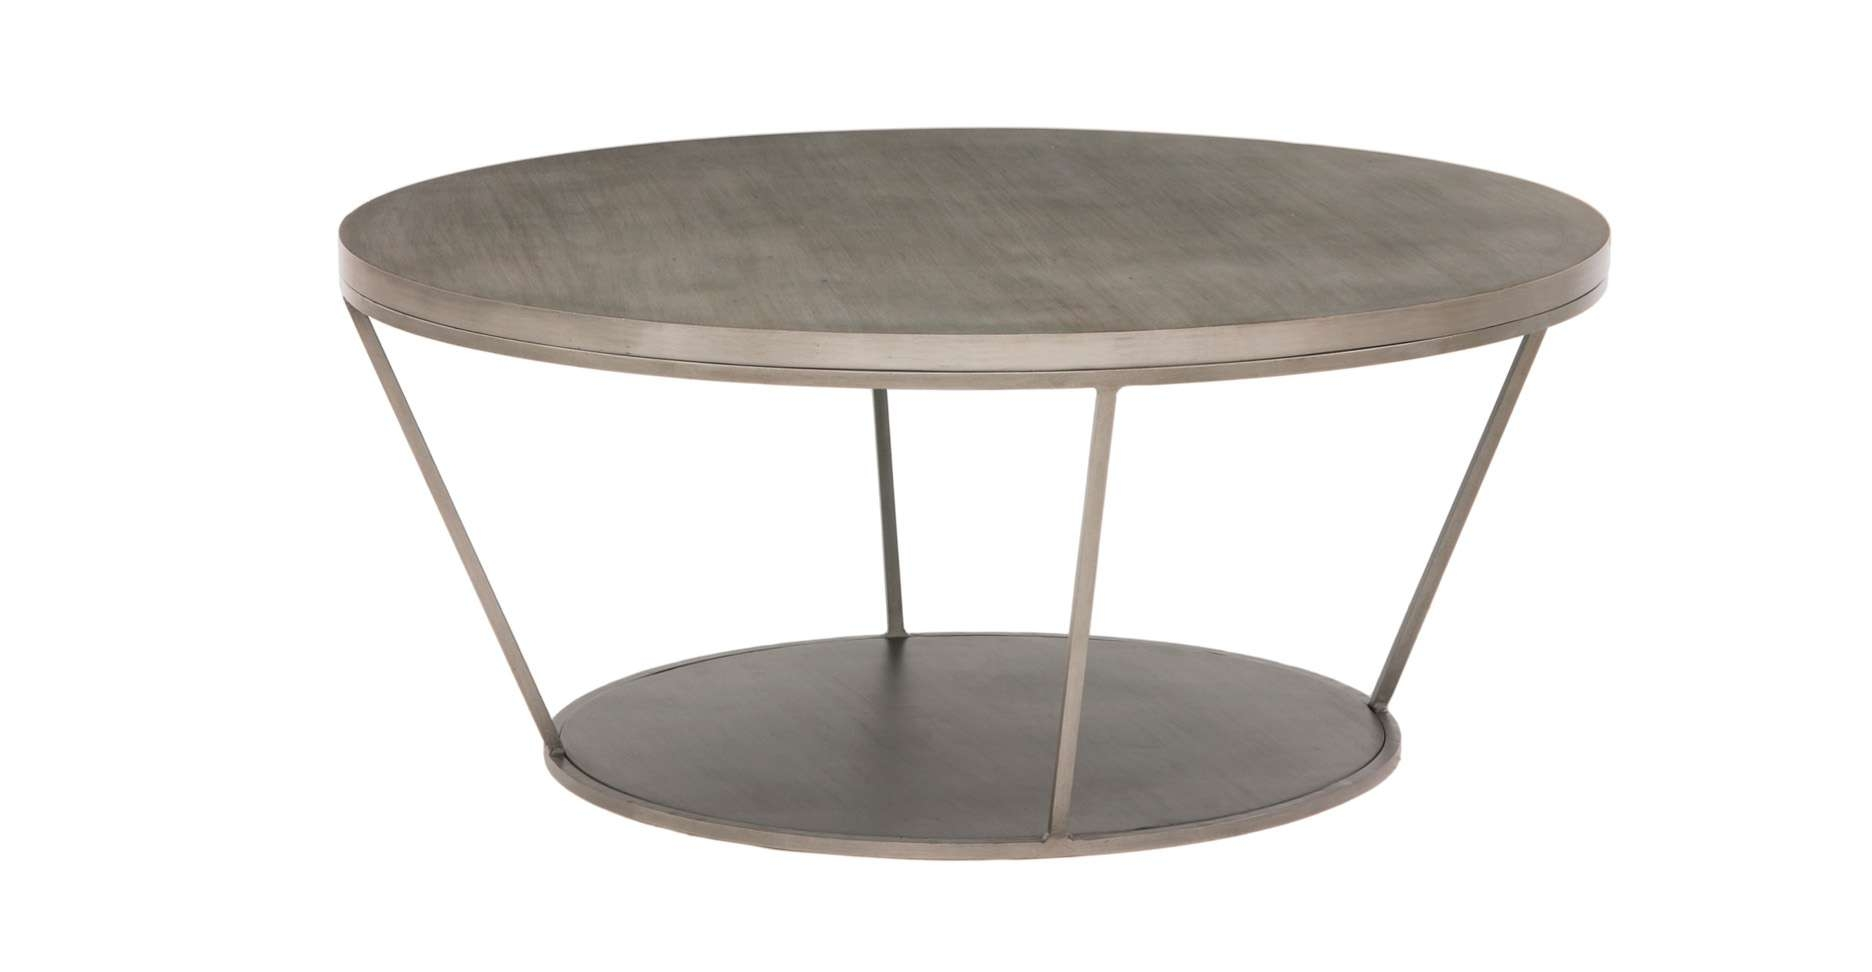 Well Known Round Steel Coffee Tables Regarding Blair Round Coffee Table (View 13 of 20)